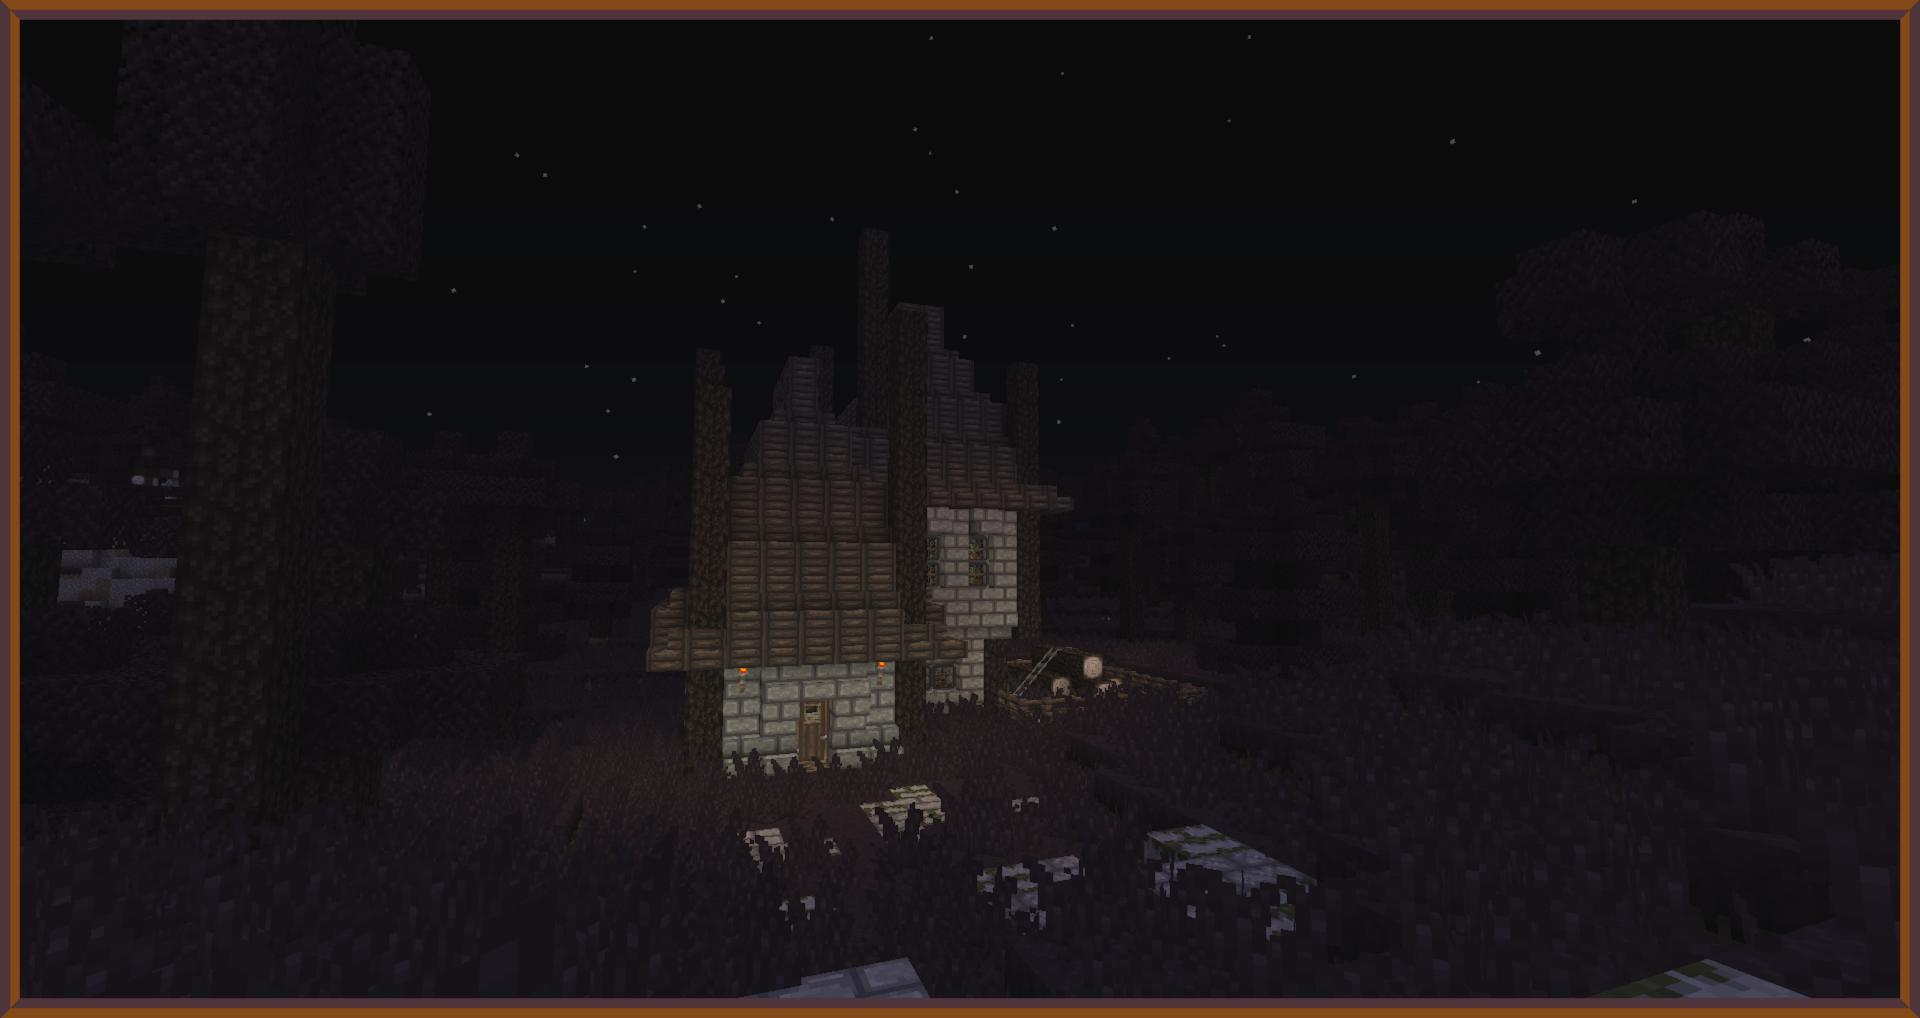 http://minecraft-forum.net/wp-content/uploads/2013/09/c4659__Mystery-of-the-Pumpkin-Castle-Map-1.jpg